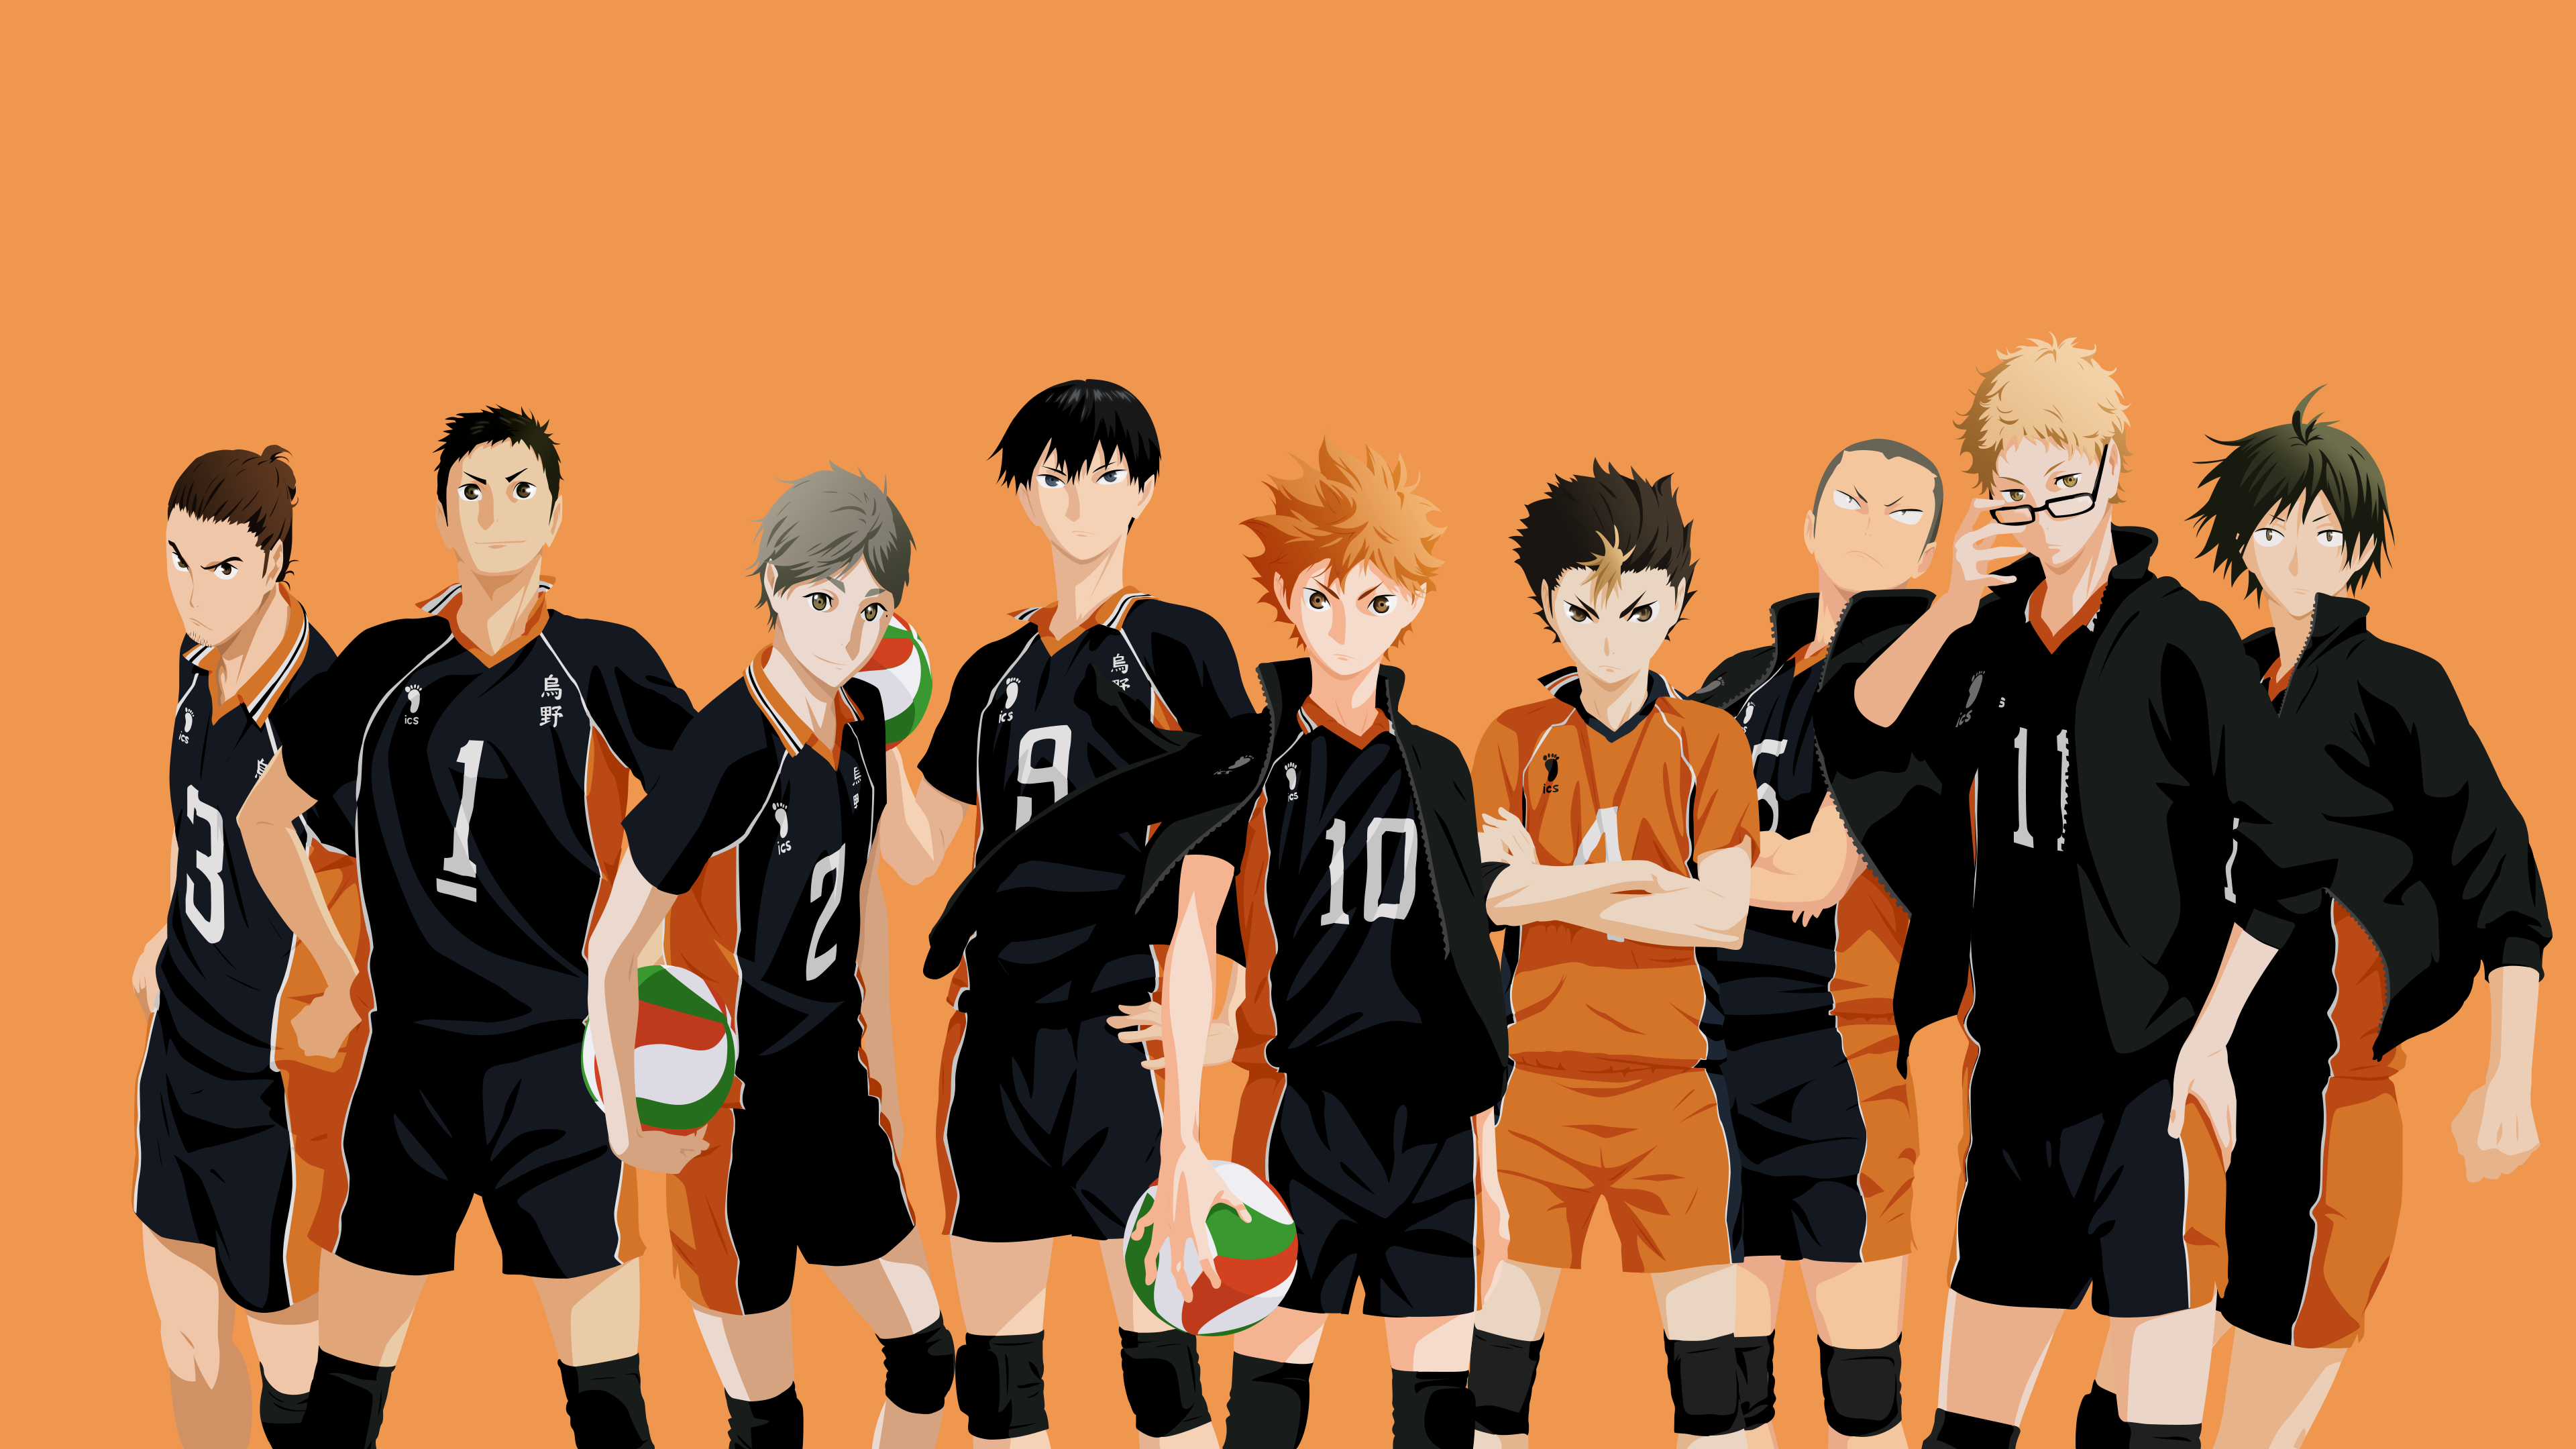 Karasuno Volleyball Team Desktop Wallpaper In 2020 Hd Anime Wallpapers Haikyuu Wallpaper Anime Wallpaper 1920x1080